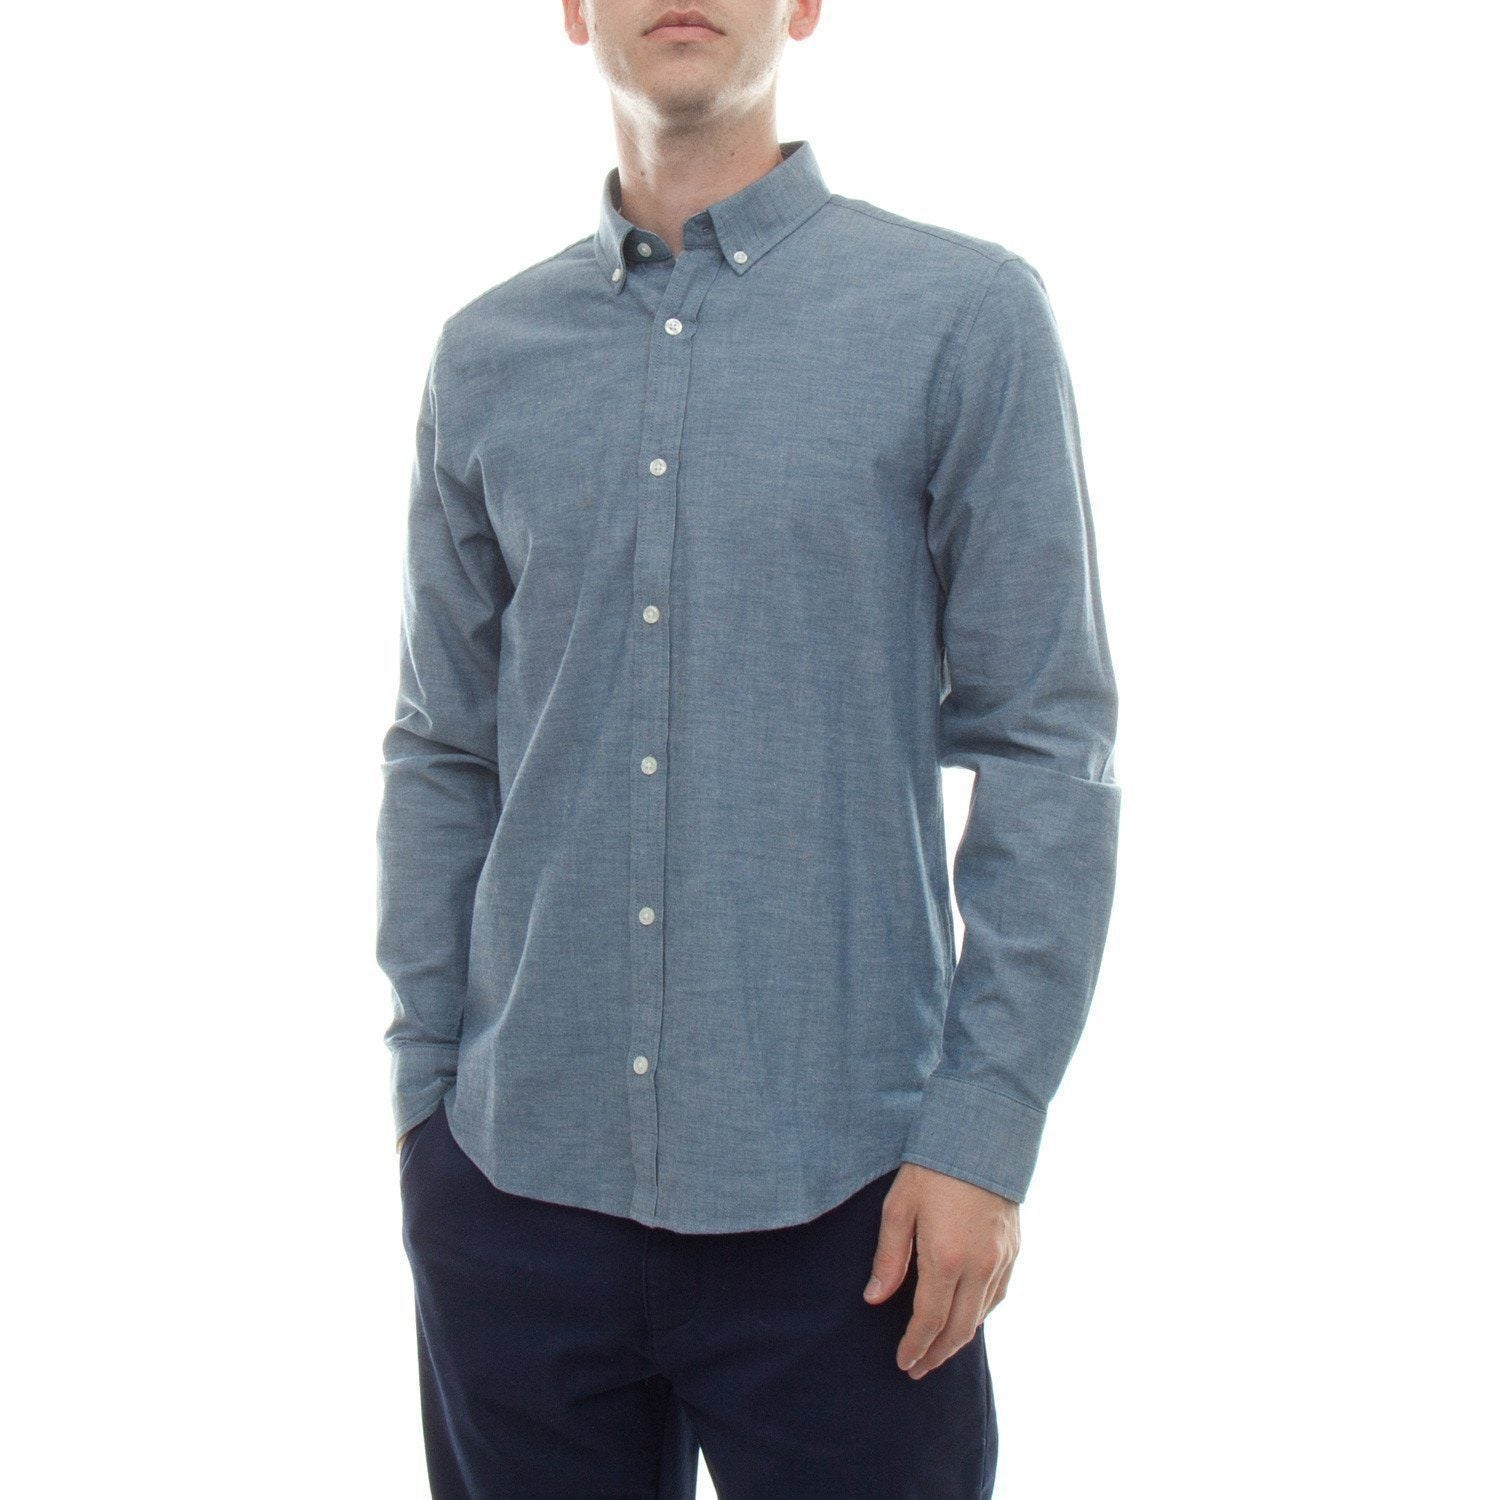 Carhartt Long Sleeve Kyoto Shirt (Blue Stone Washed) - Number Six 1